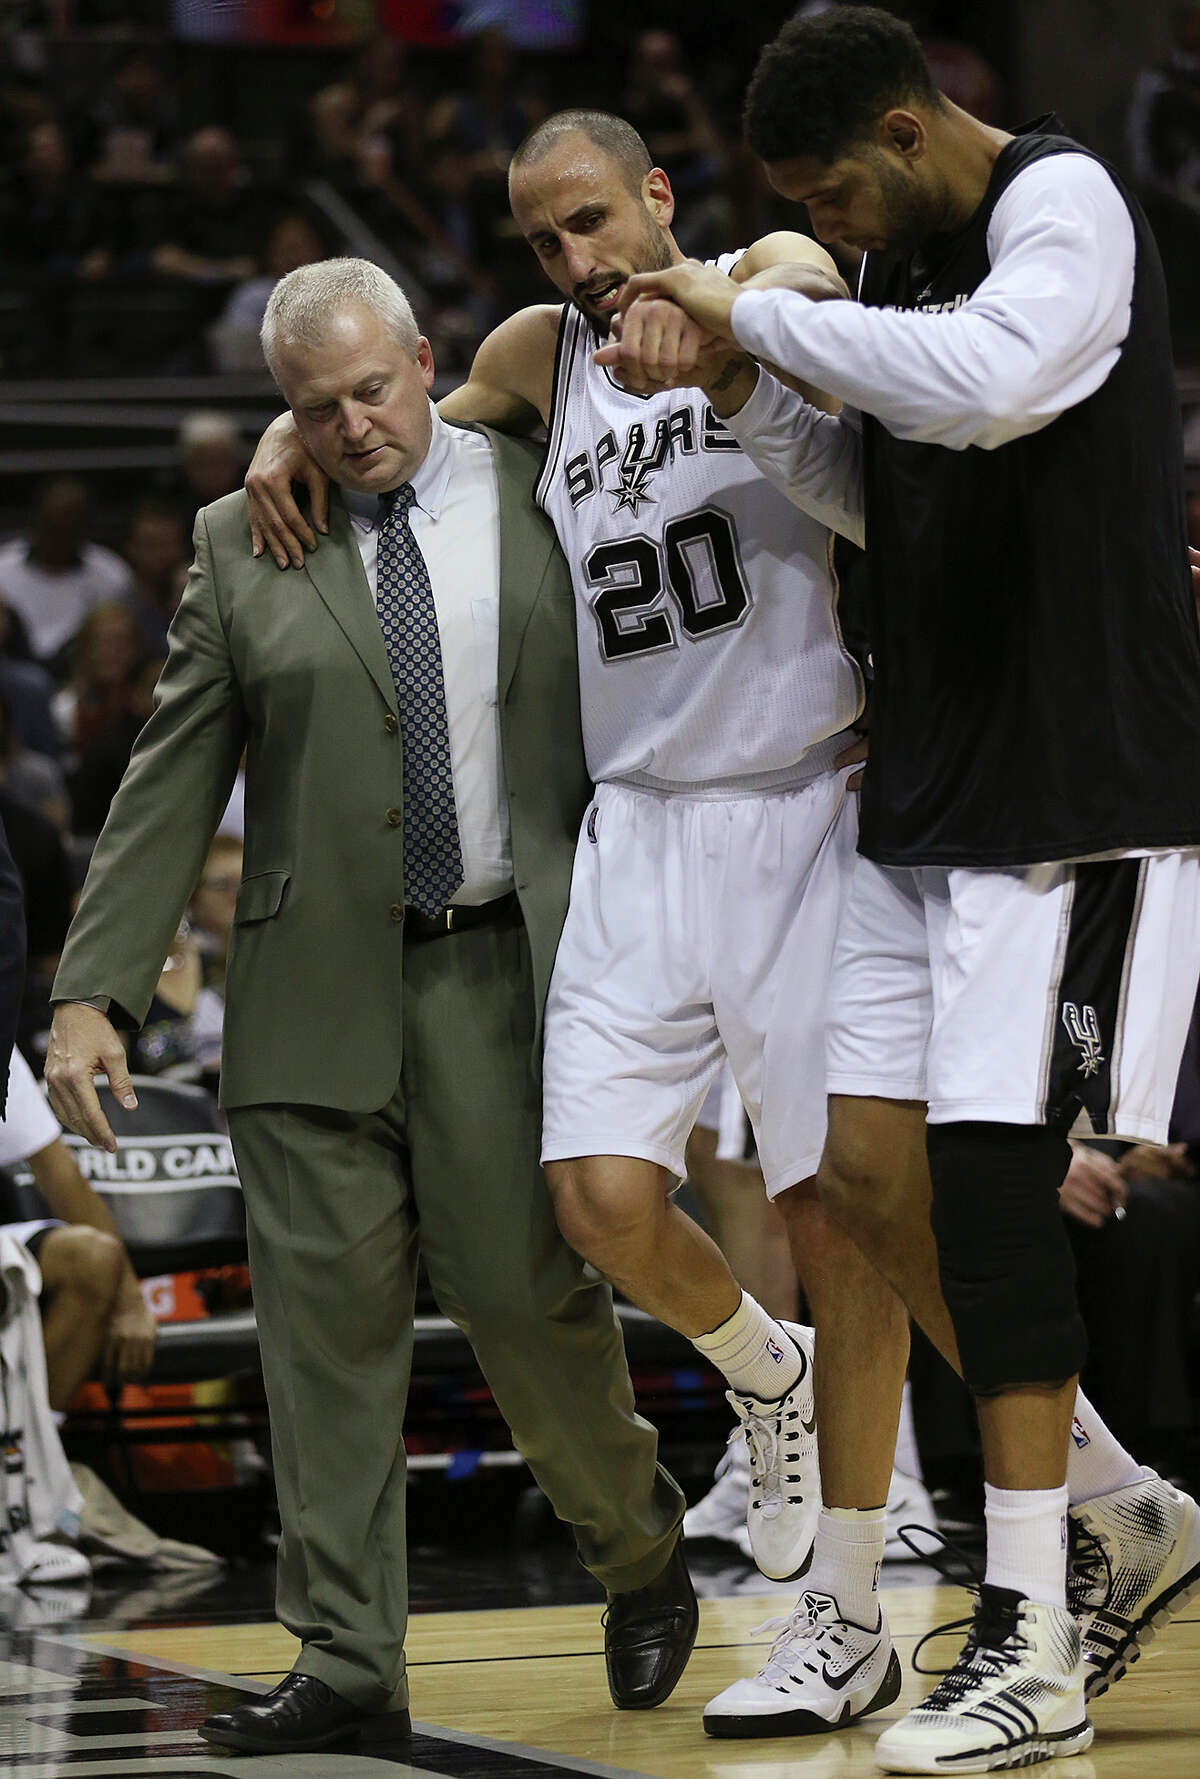 The Spurs' Manu Ginobili is helped off the court by head athletic trainer Will Sevening and Tim Duncan during the second half at the AT&T Center on March 15, 2015.